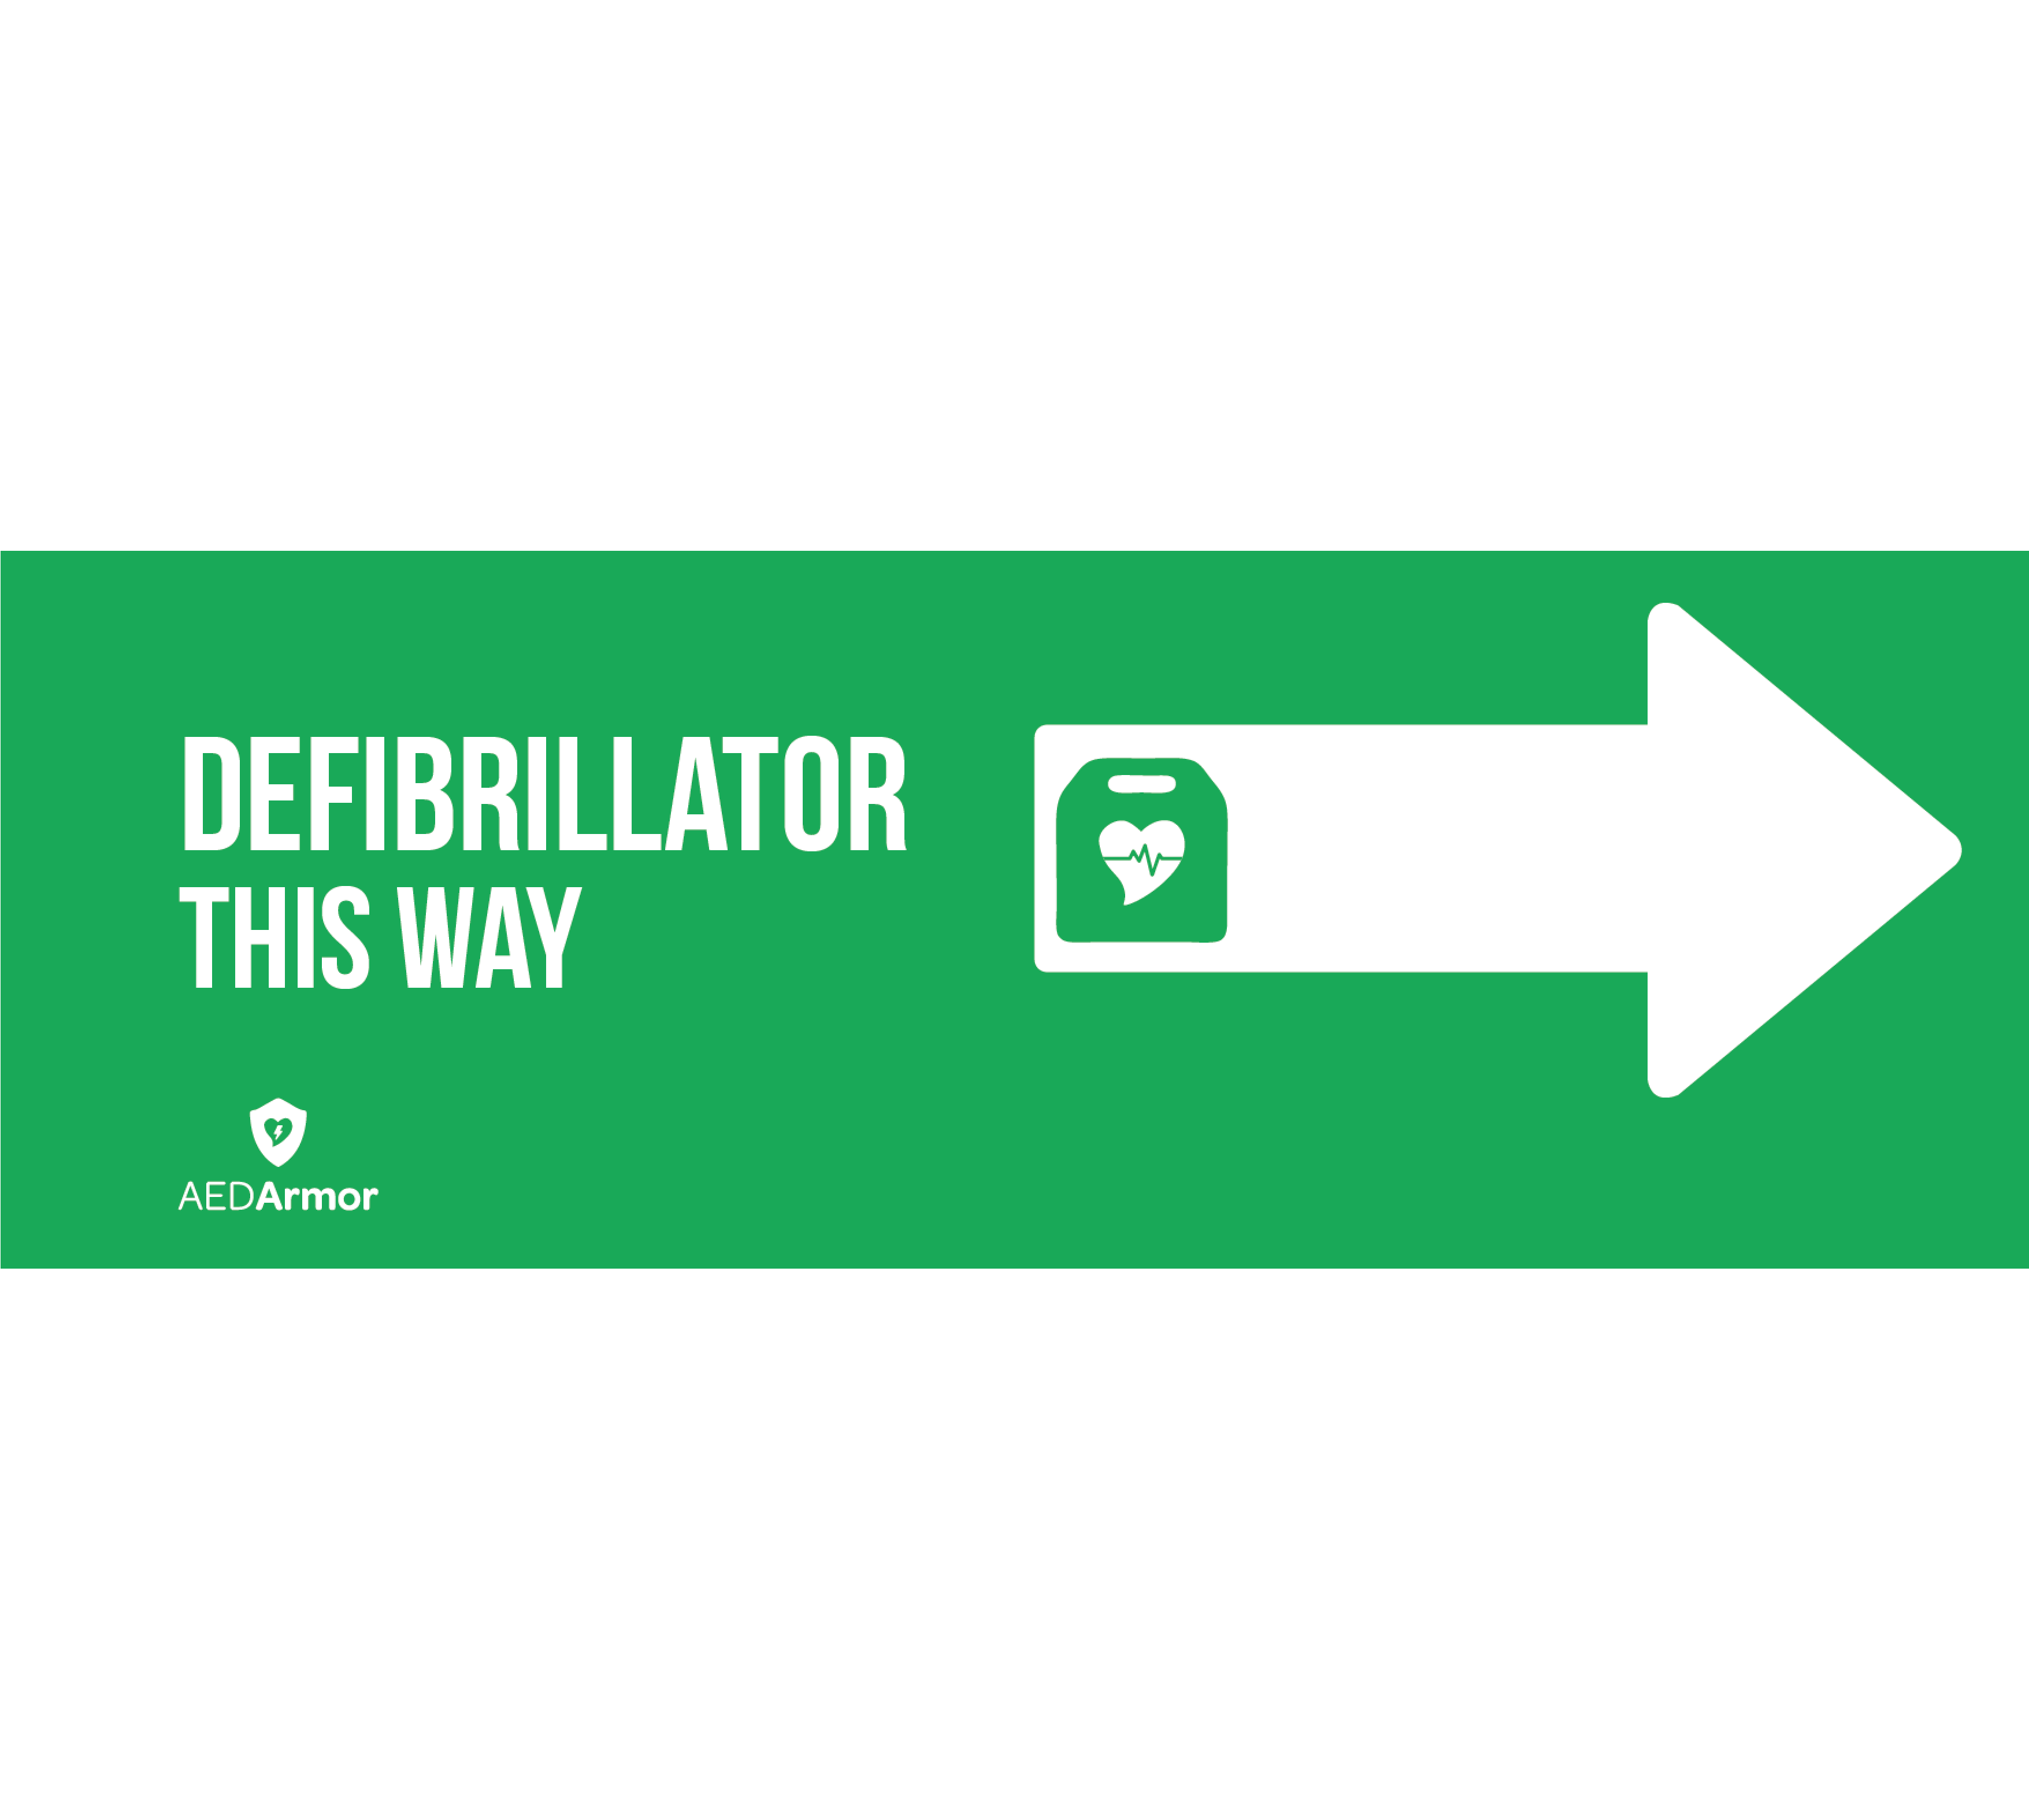 AED Armor 'Defibrillator This Way' Right